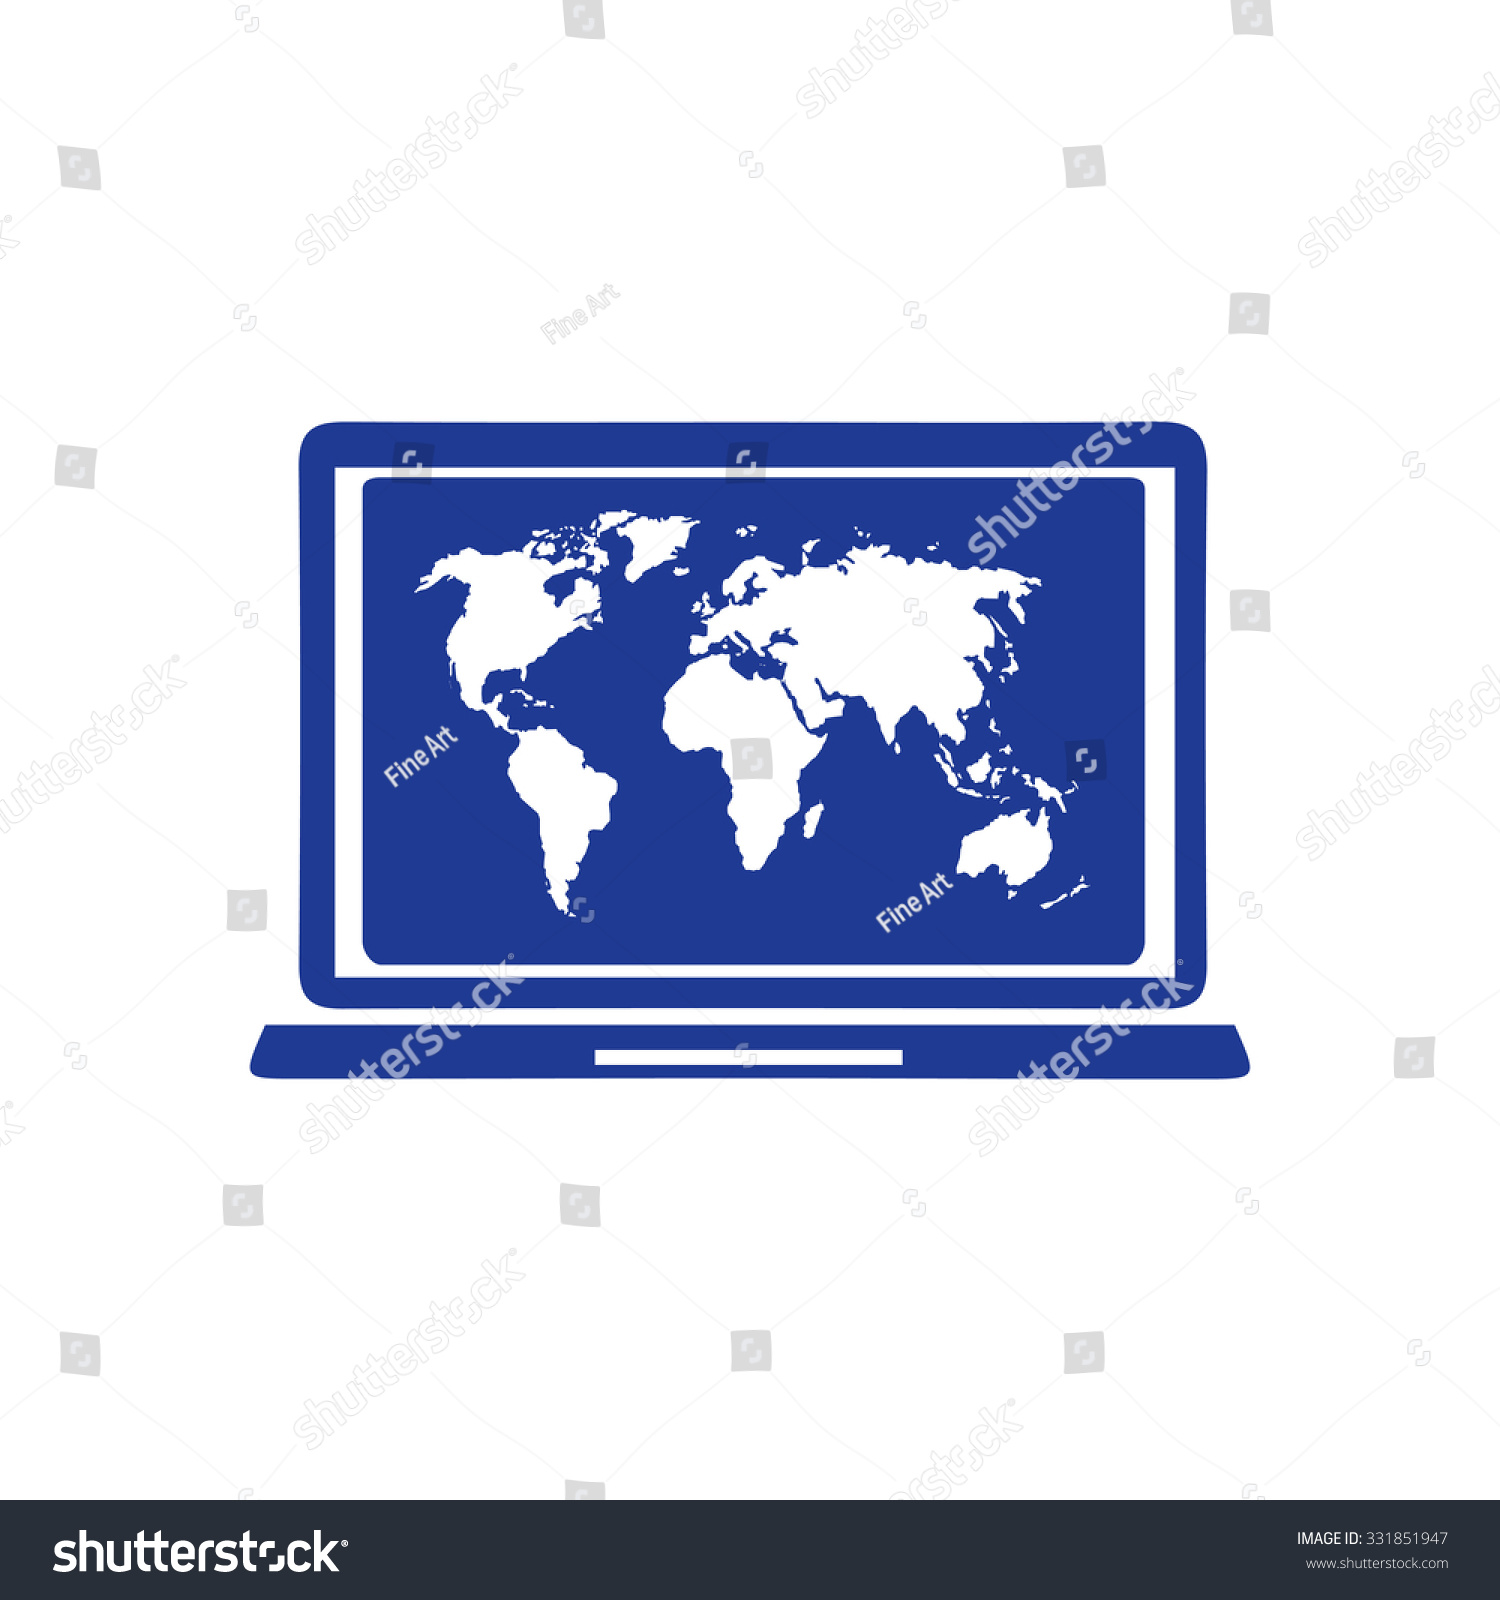 Laptop world map illustration world map stock vector 331851947 laptop and world map illustration world map geography symbol flat design style vector gumiabroncs Gallery